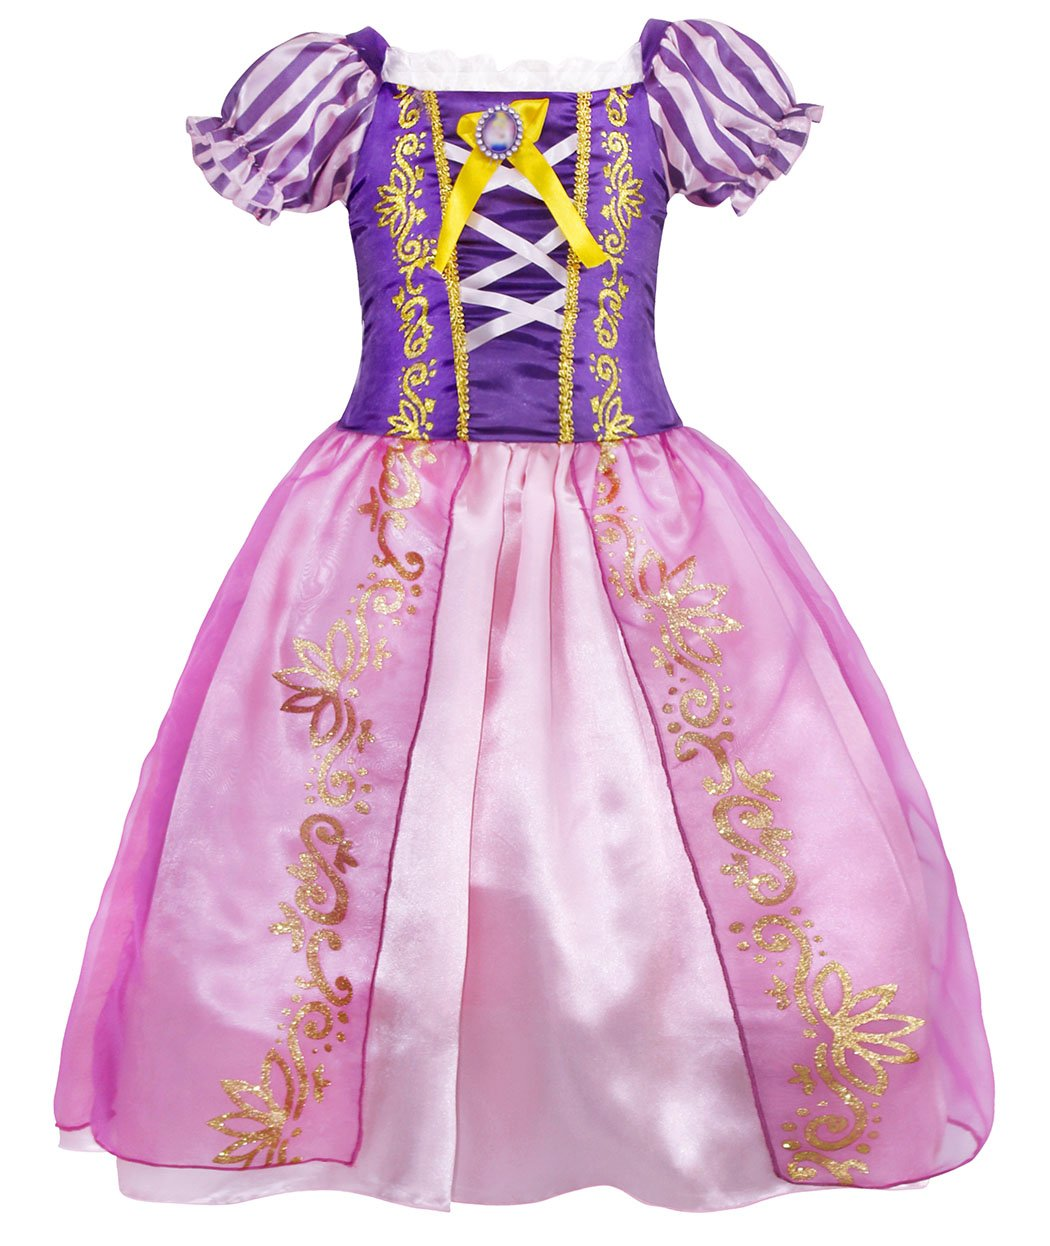 - 71mZYJerAtL - Cotrio Rapunzel Dress Up for Girls Halloween Princess Costume Birthday Theme Party Dresses